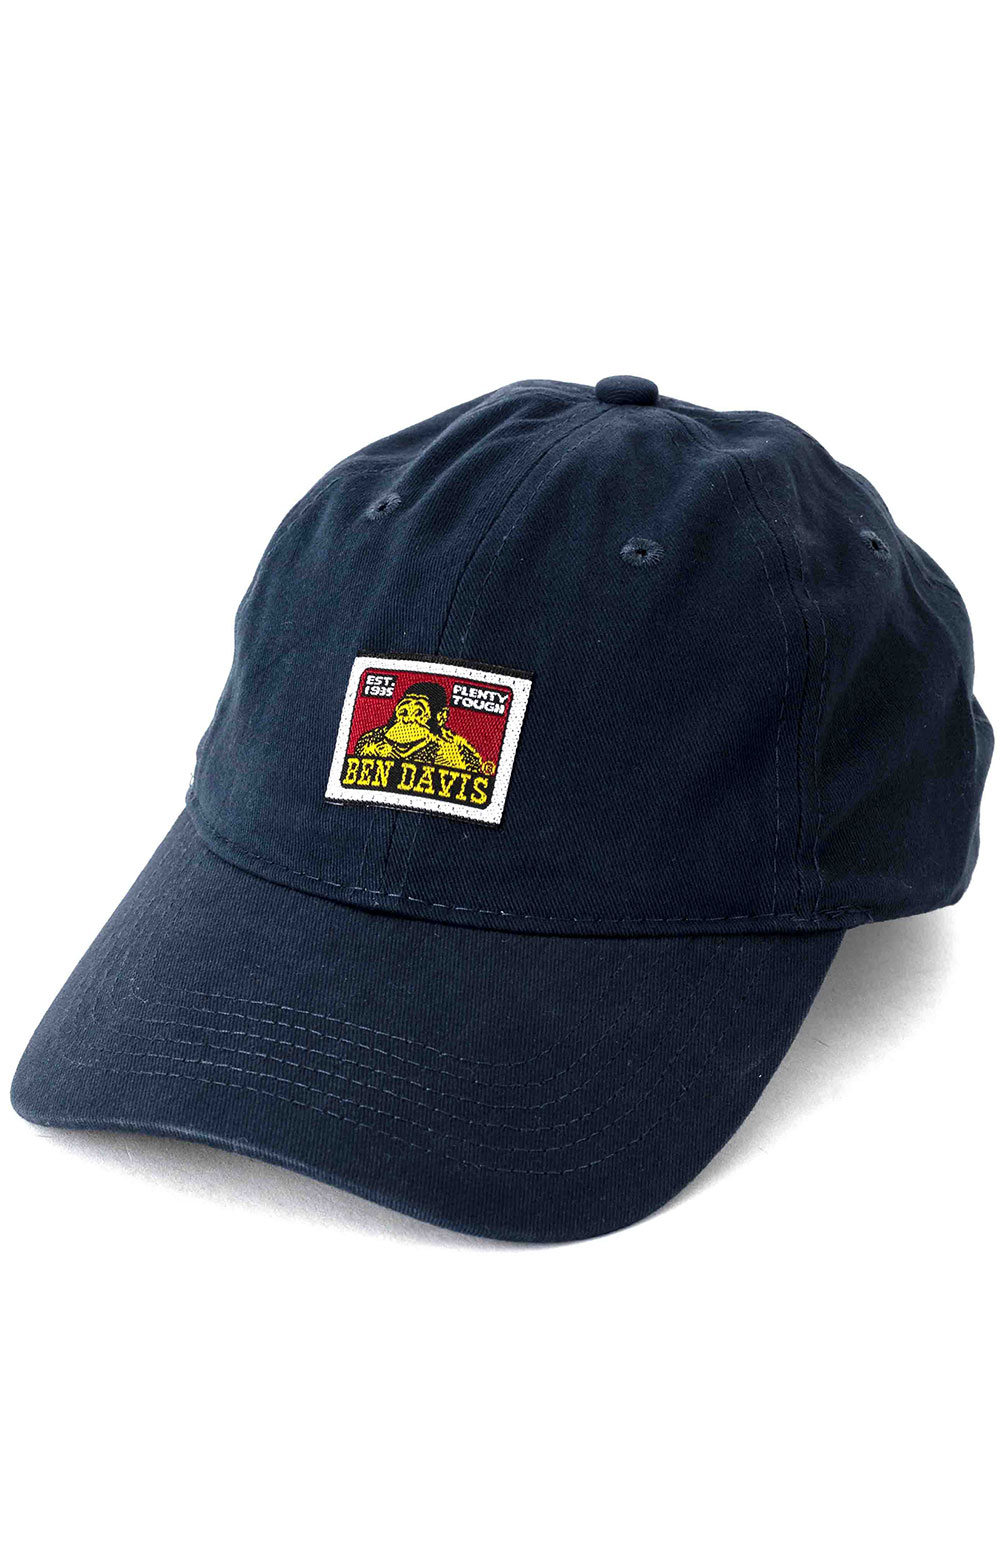 Cotton Twill Baseball Cap - Navy